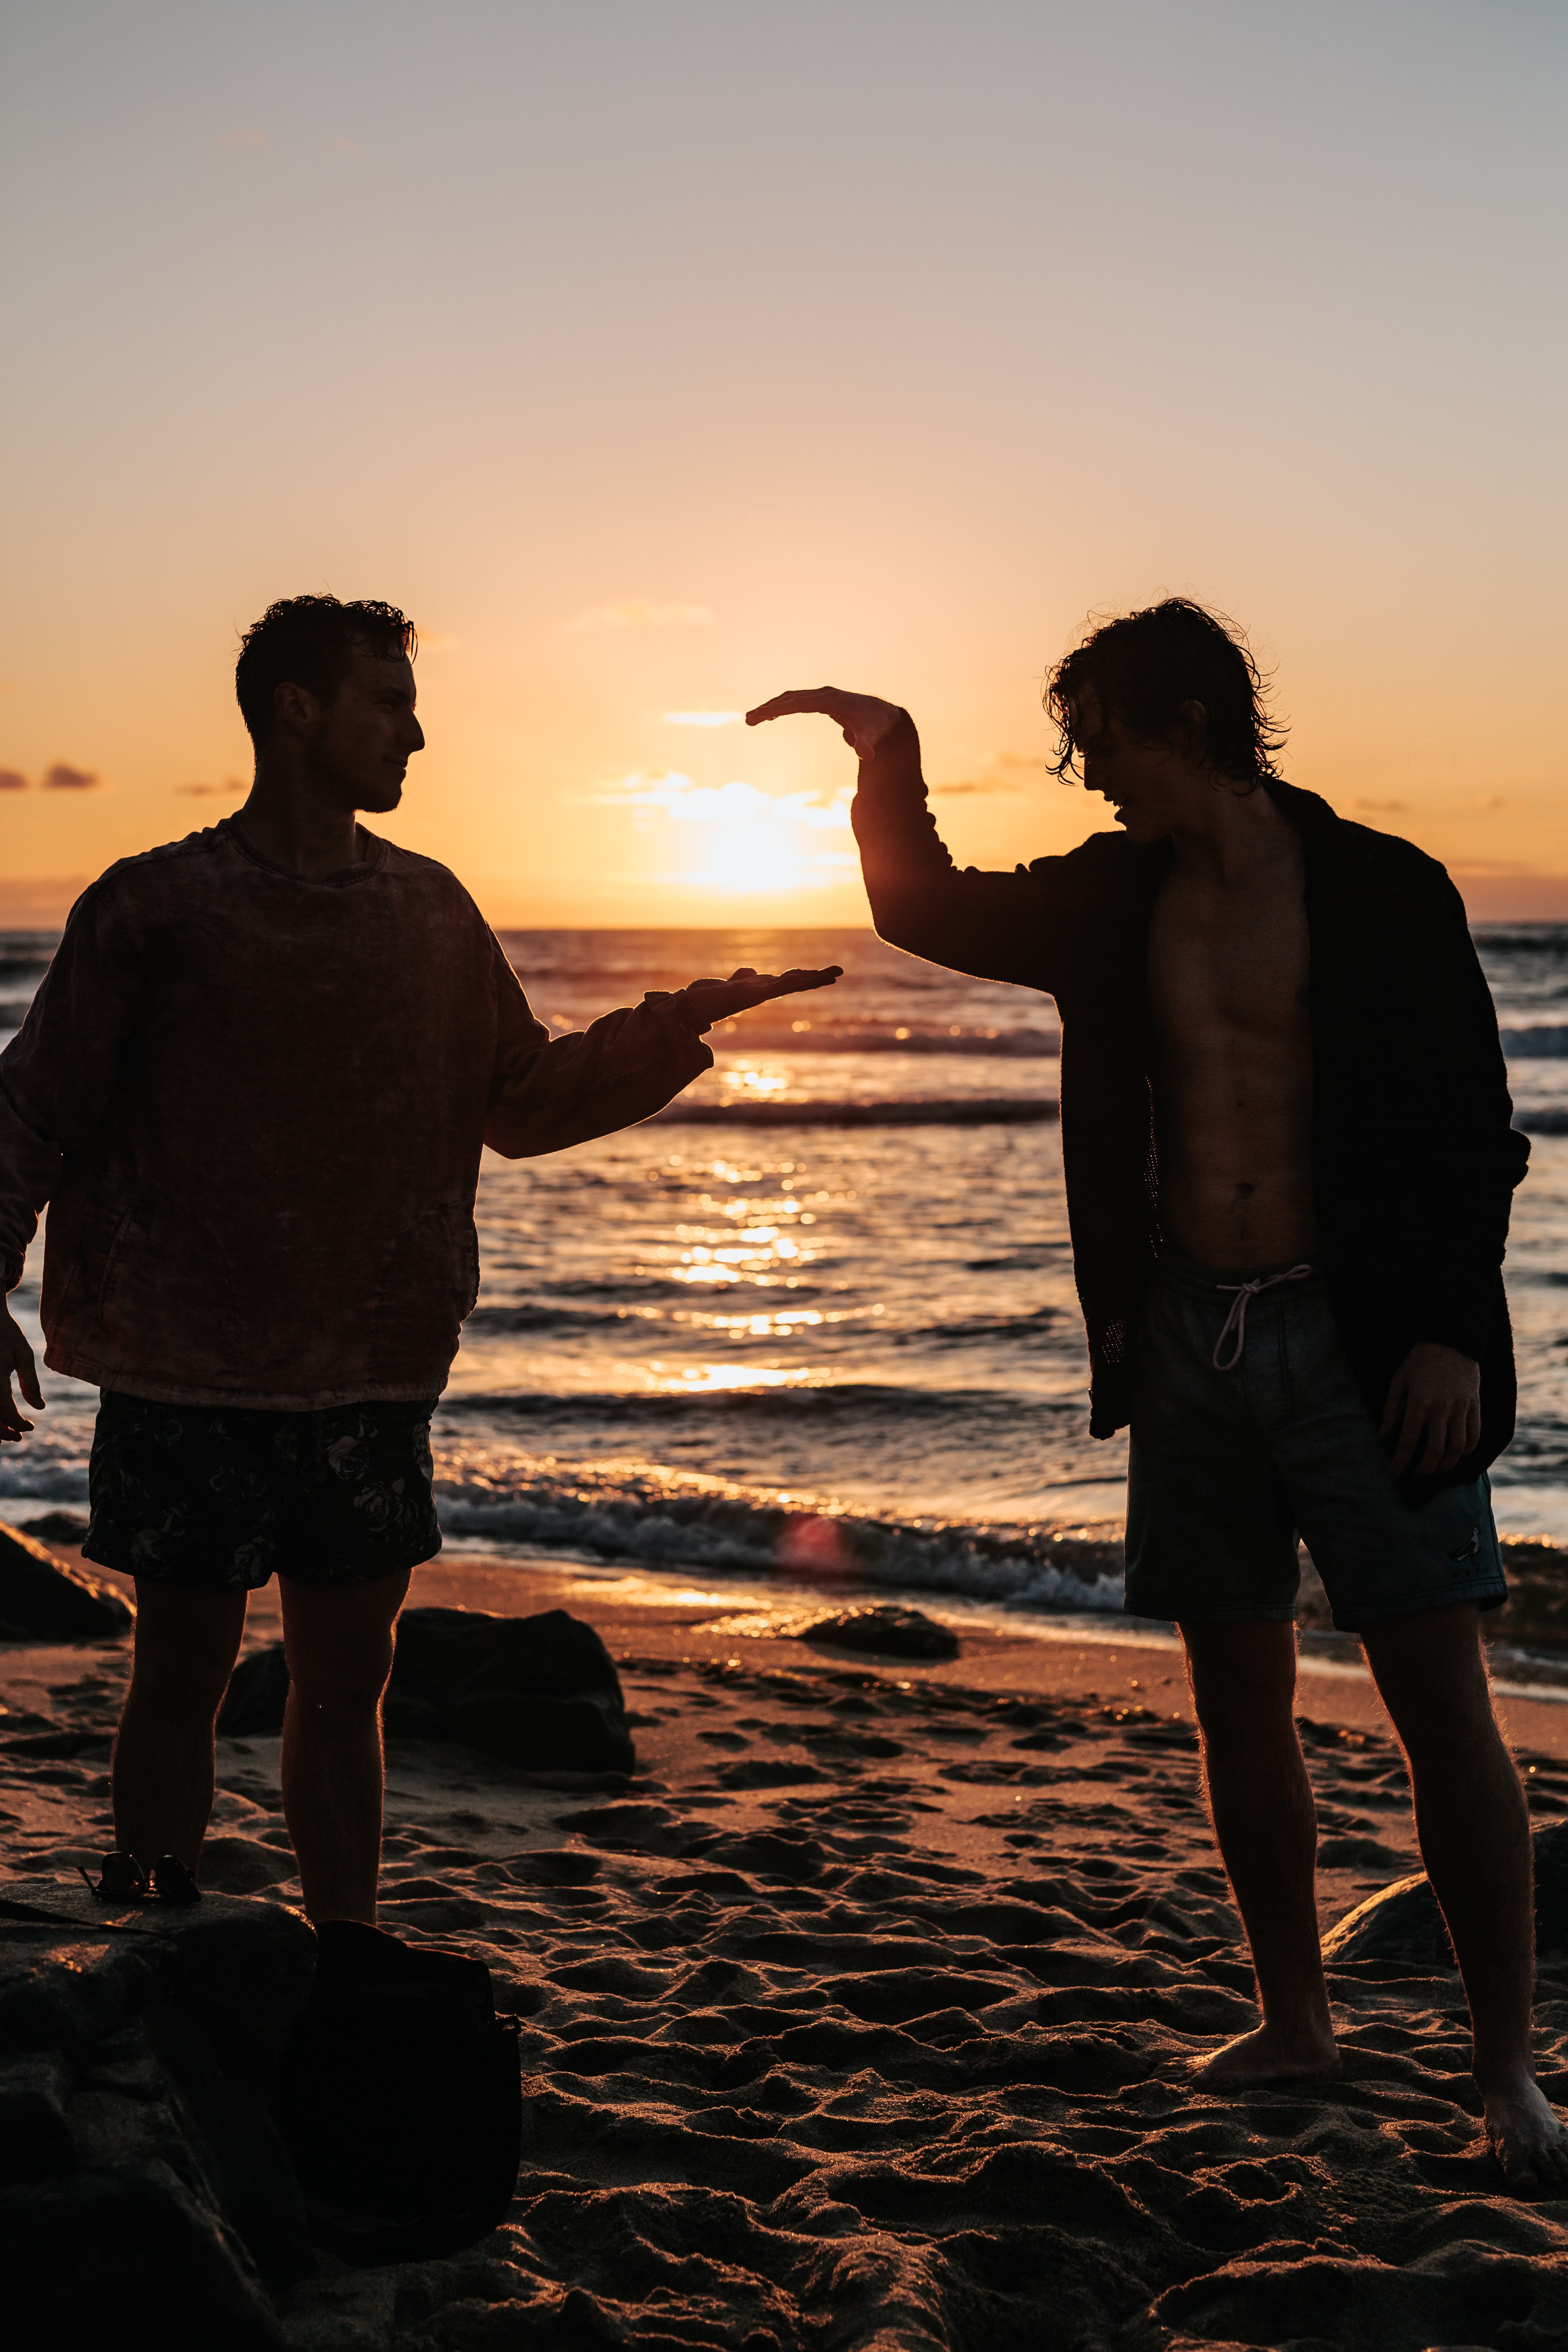 close-up photo of two men shaking hands near beach at sunset